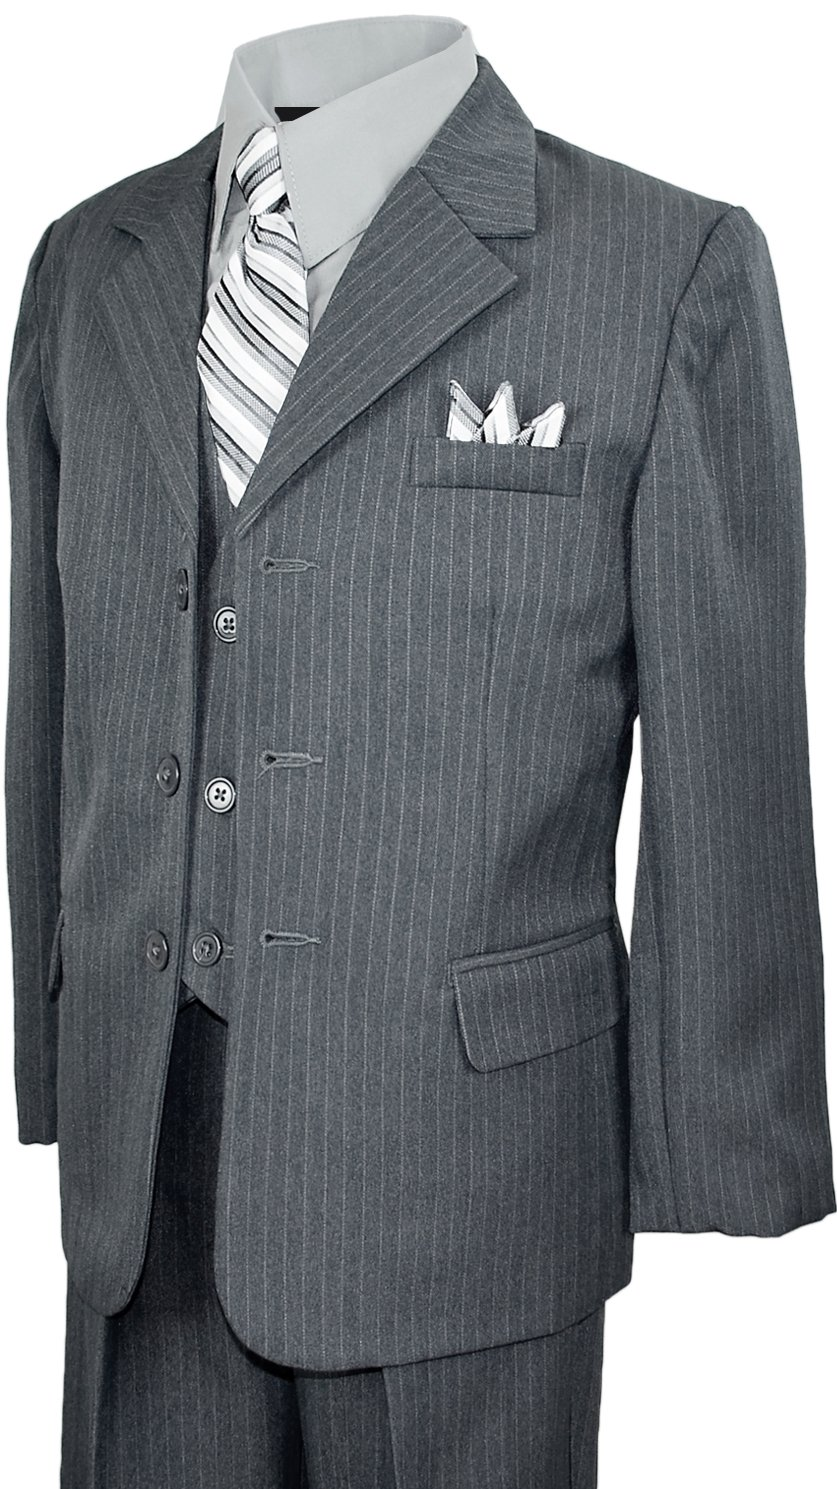 Boys Pinstripe Suit in Grey with Matching Tie Size 7